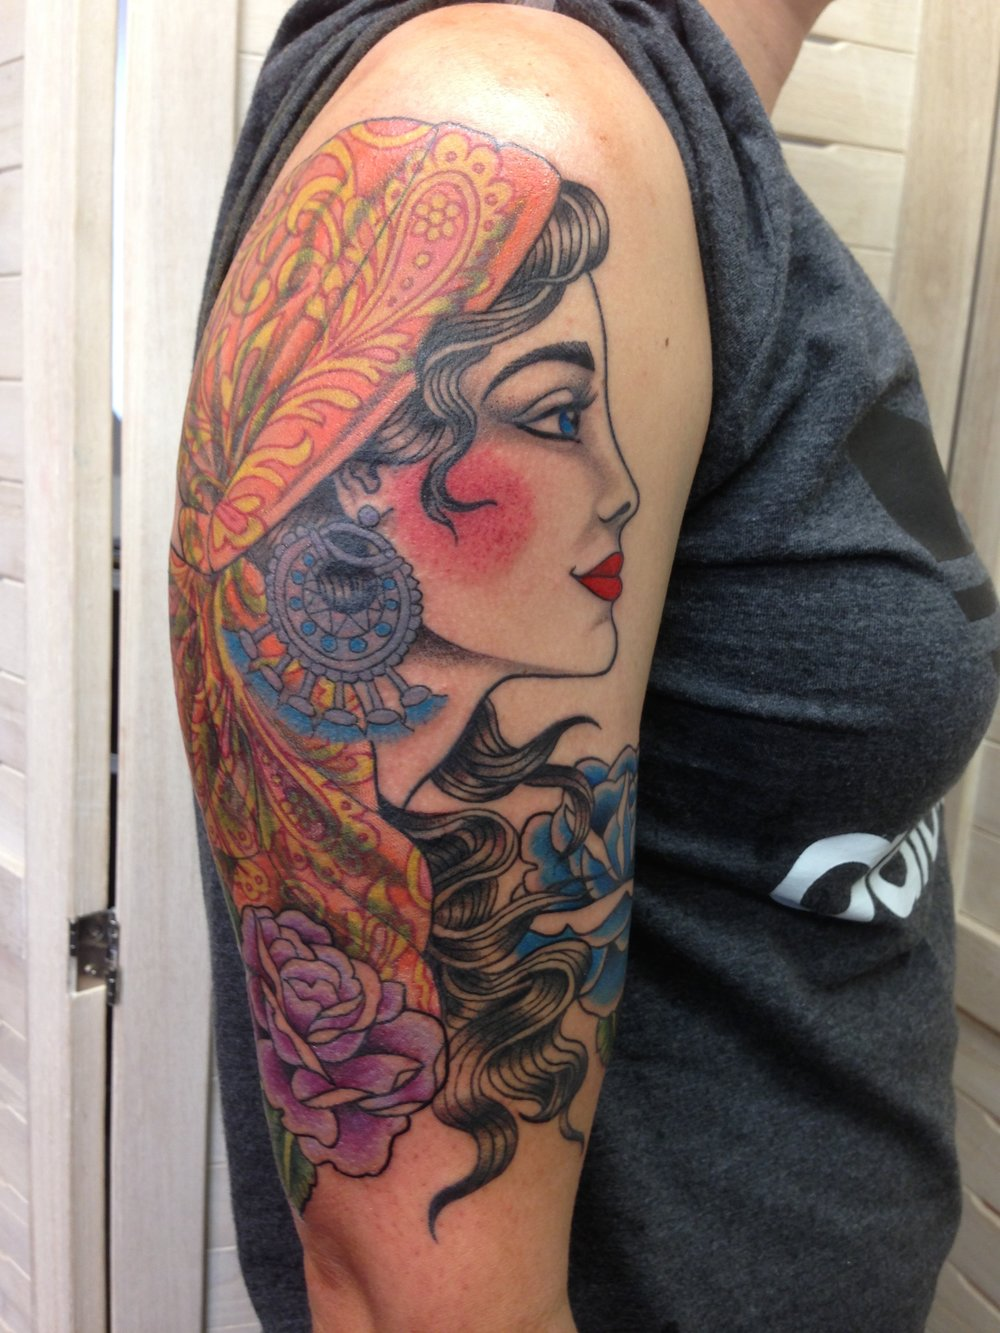 gypsy-tattoo-megan-oliver.jpg